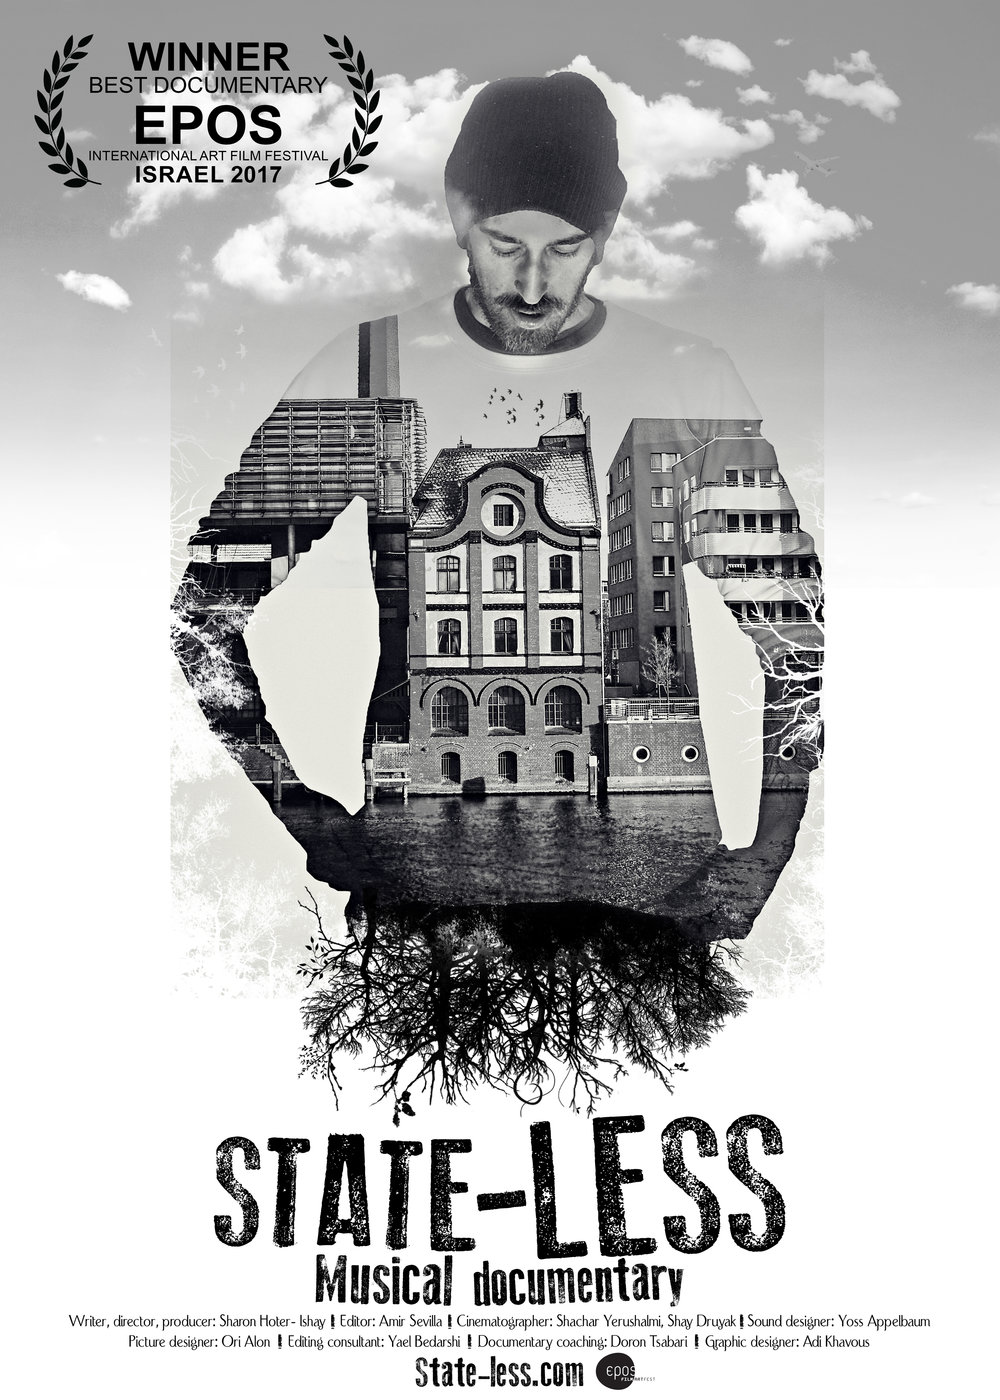 State-Less - Music Documentary.  The Story of Adi Khavous, a musician and extraordinary artist who chose a vagabond lifestyle. Adi left home in Israel and now lives in Canada as a solitary immigrant and rock 'n' roll singer. The film depicts five years of Adi's journey and presents an alternative, off-beat way of life. In his lonesome life, Adi holds on to one dream: to break through as a musician.